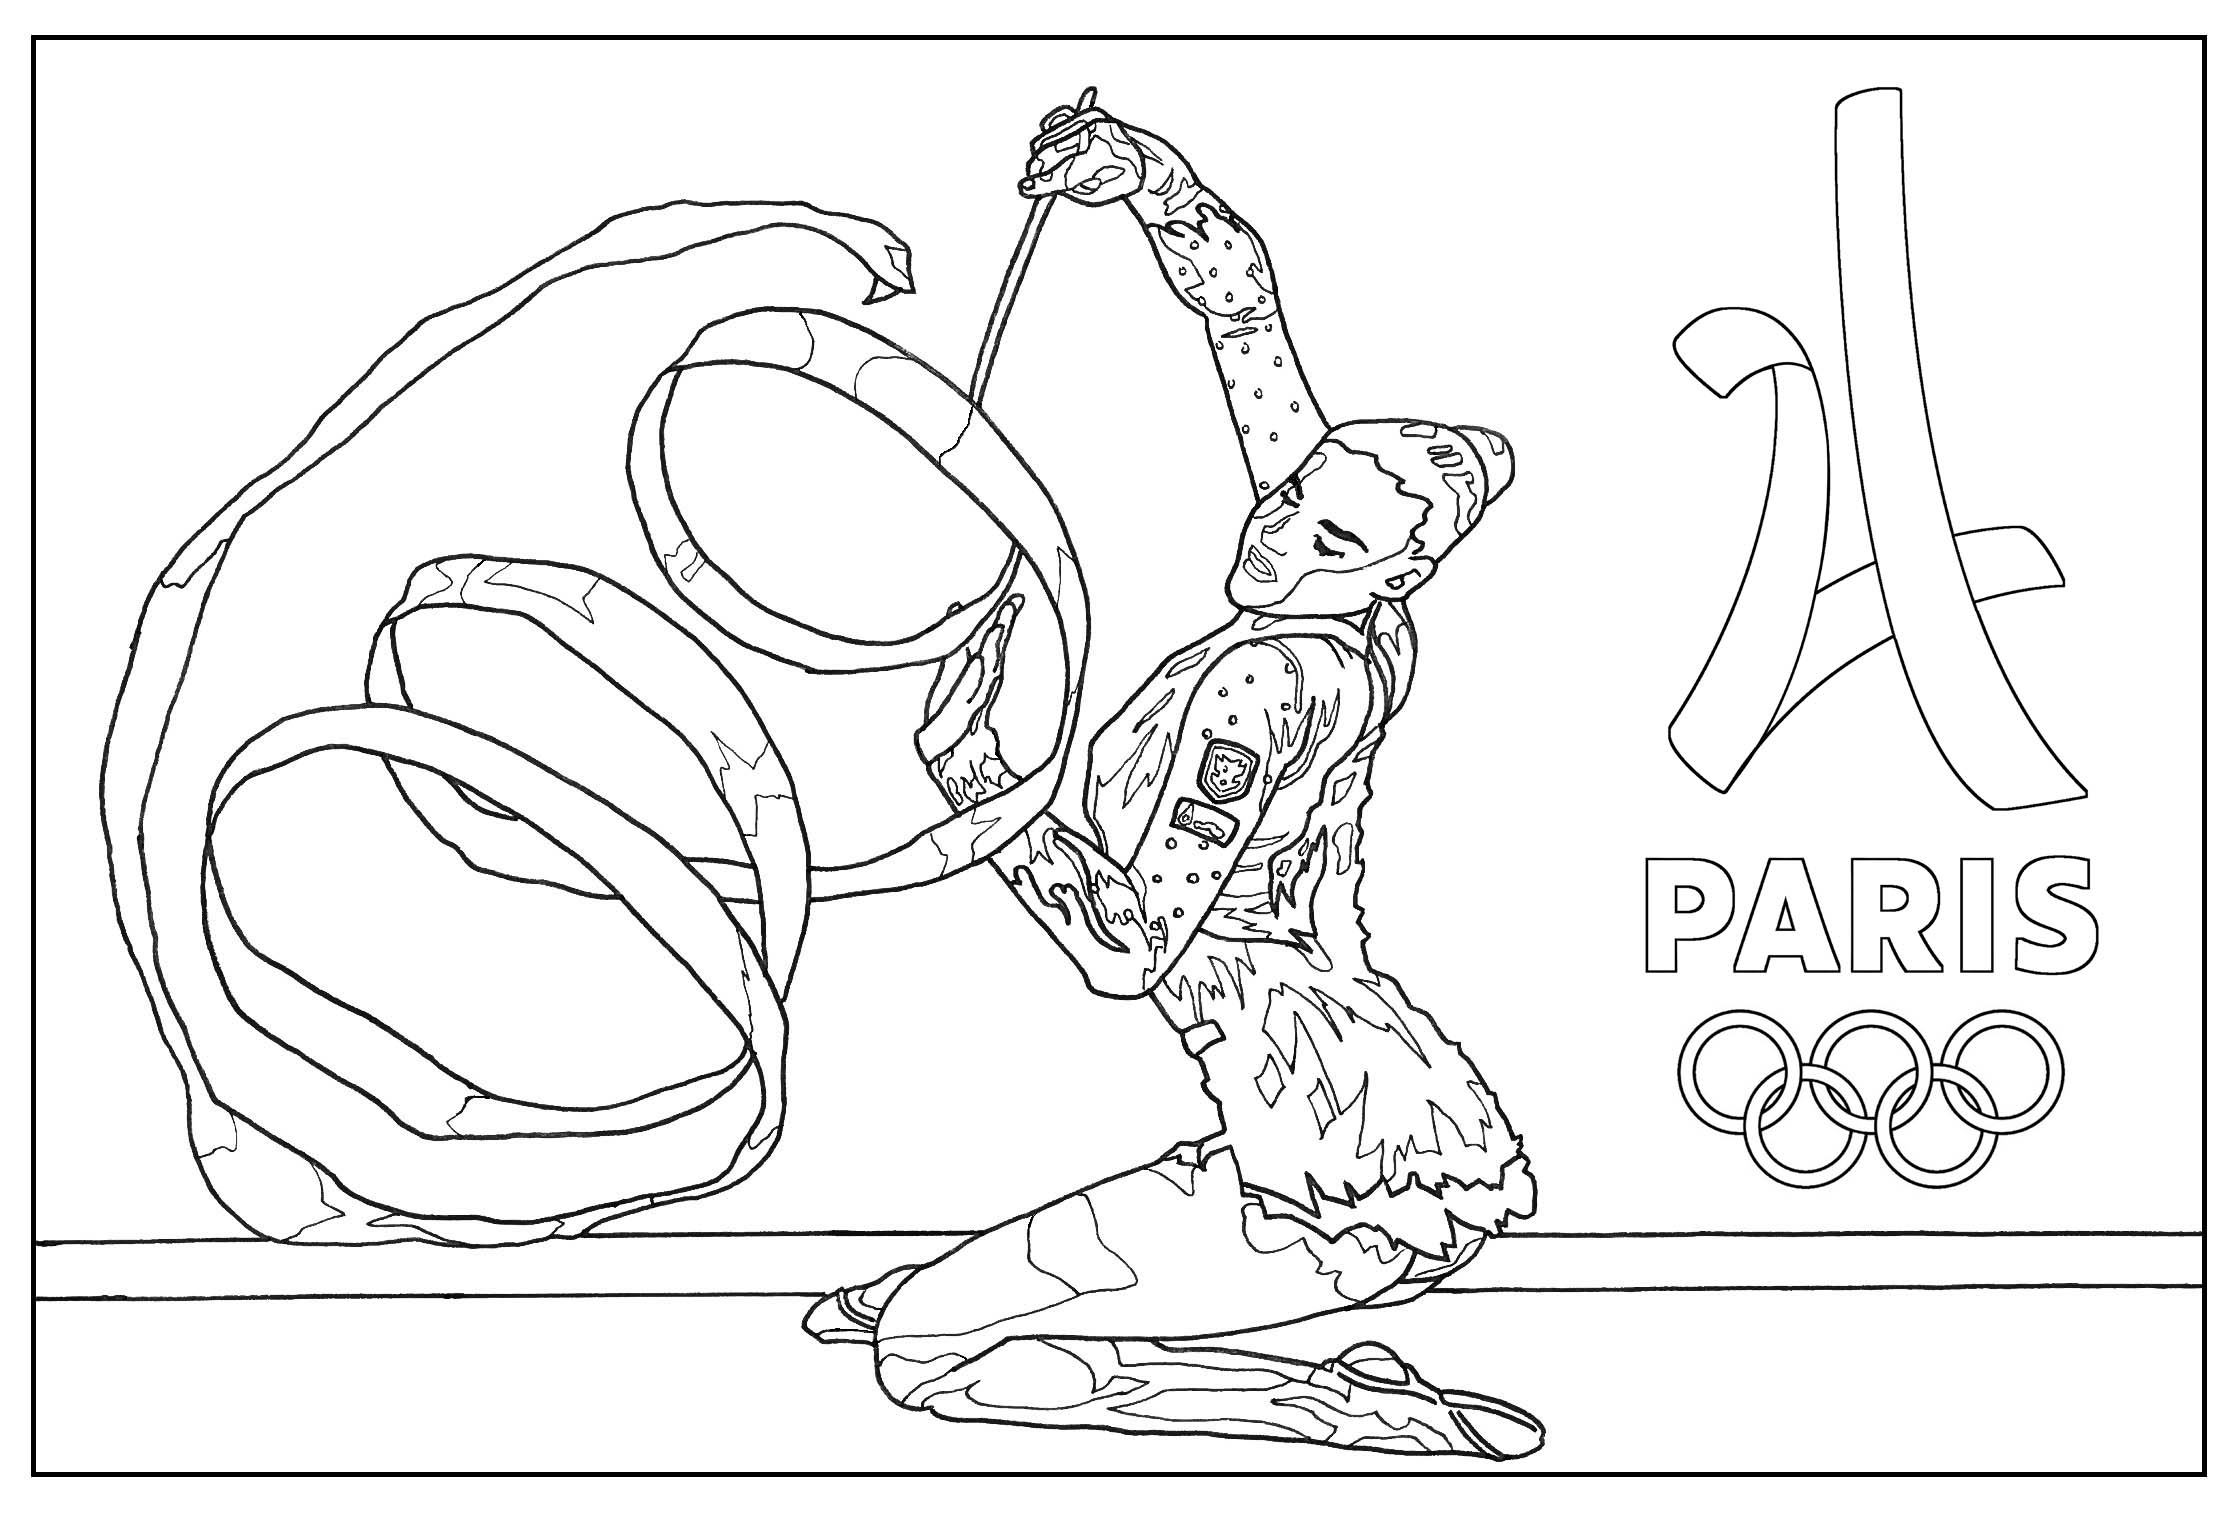 Olympic Games Gymnastic Paris 2024 Olympic & Sport Adult to Print Of Special Olympics Coloring Pages Inspirational Olympic torch Coloring Download